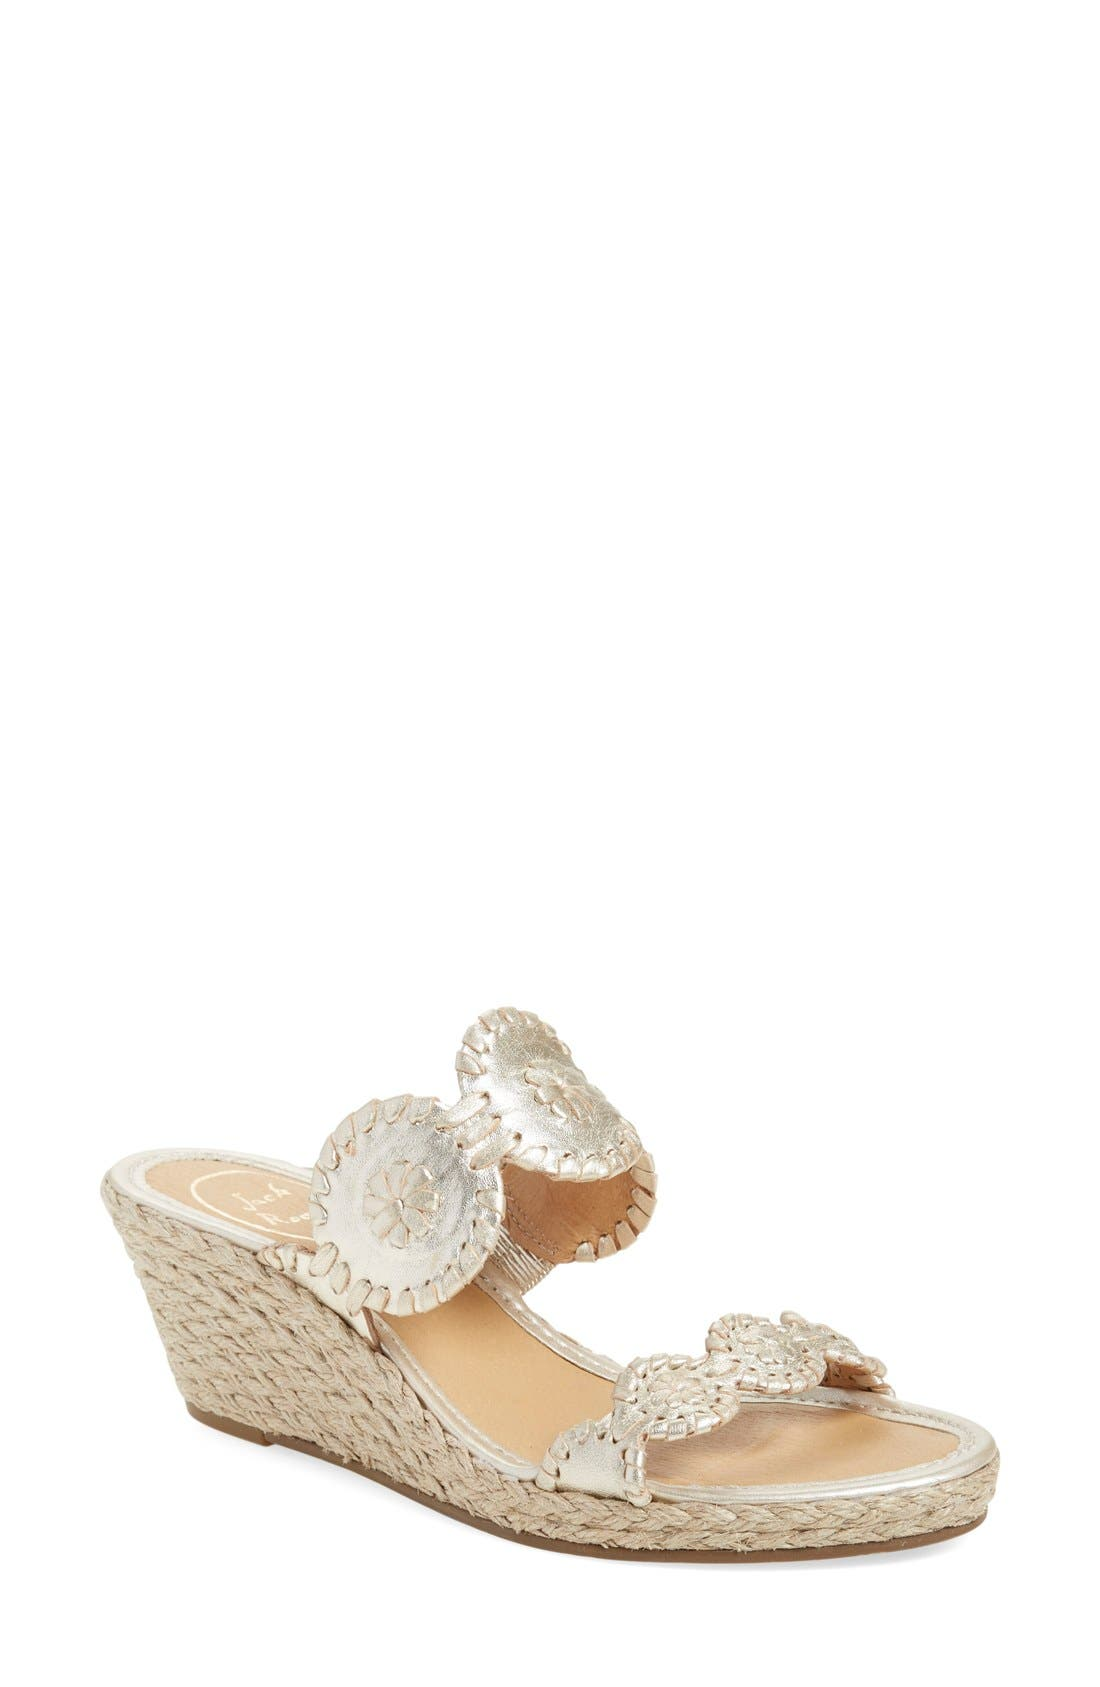 JACK ROGERS 'Shelby' Whipstitched Wedge Sandal, Main, color, PLATINUM